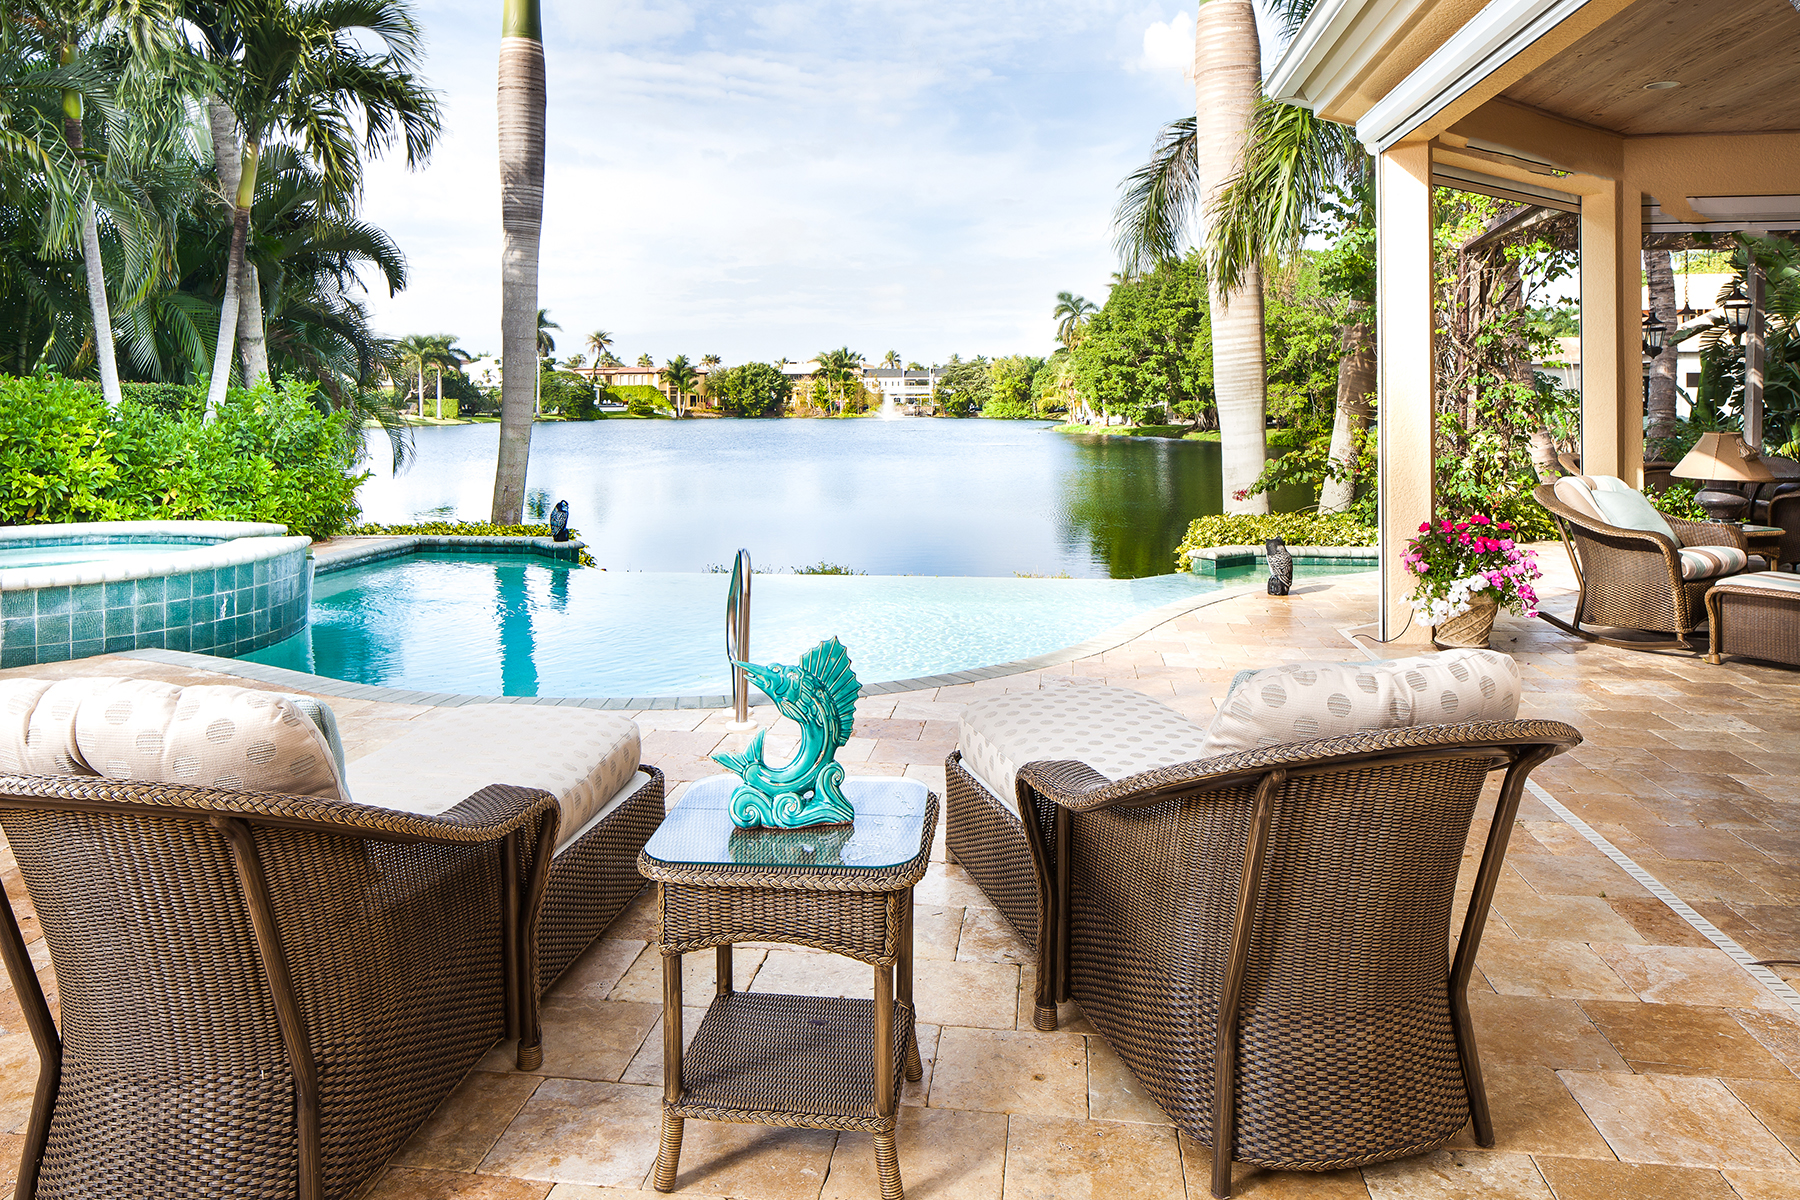 Single Family Home for Sale at Naples 531 8th Ave S, Naples, Florida 34102 United States